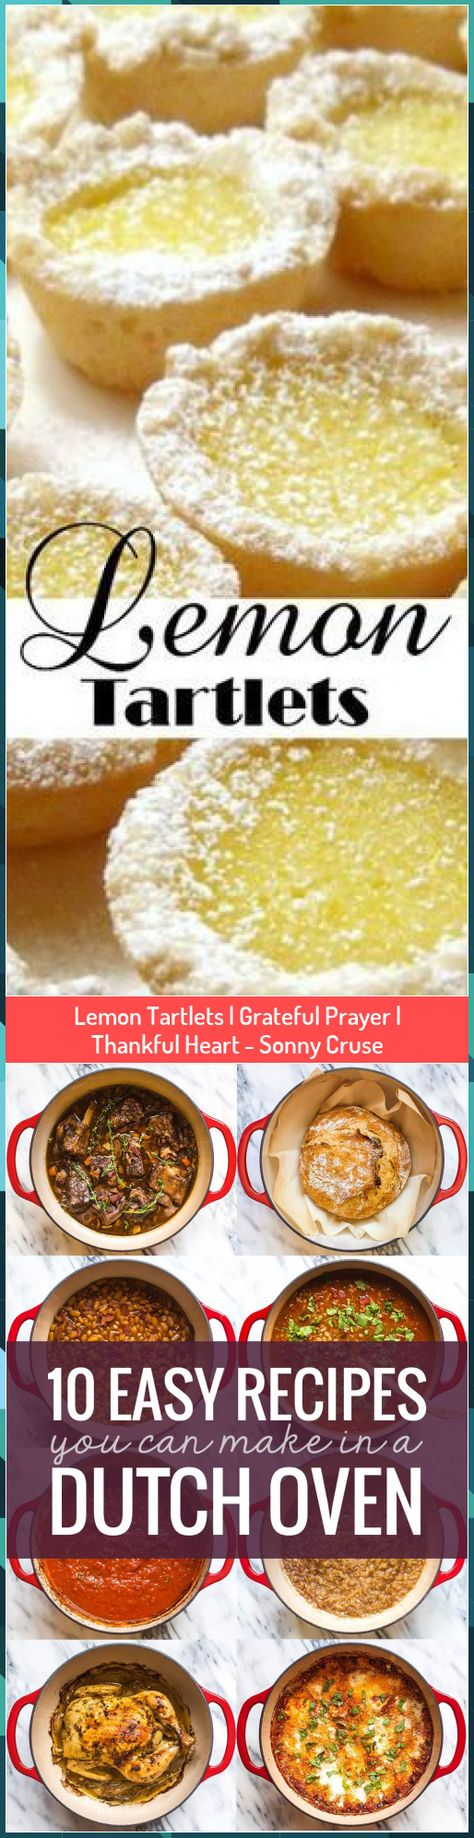 Lemon Tartlets | Grateful Prayer | Thankful Heart - Sonny Cruse #Cruse #Grateful #Heart #Lemon #Prayer #Sonny #Tartlets #Thankful